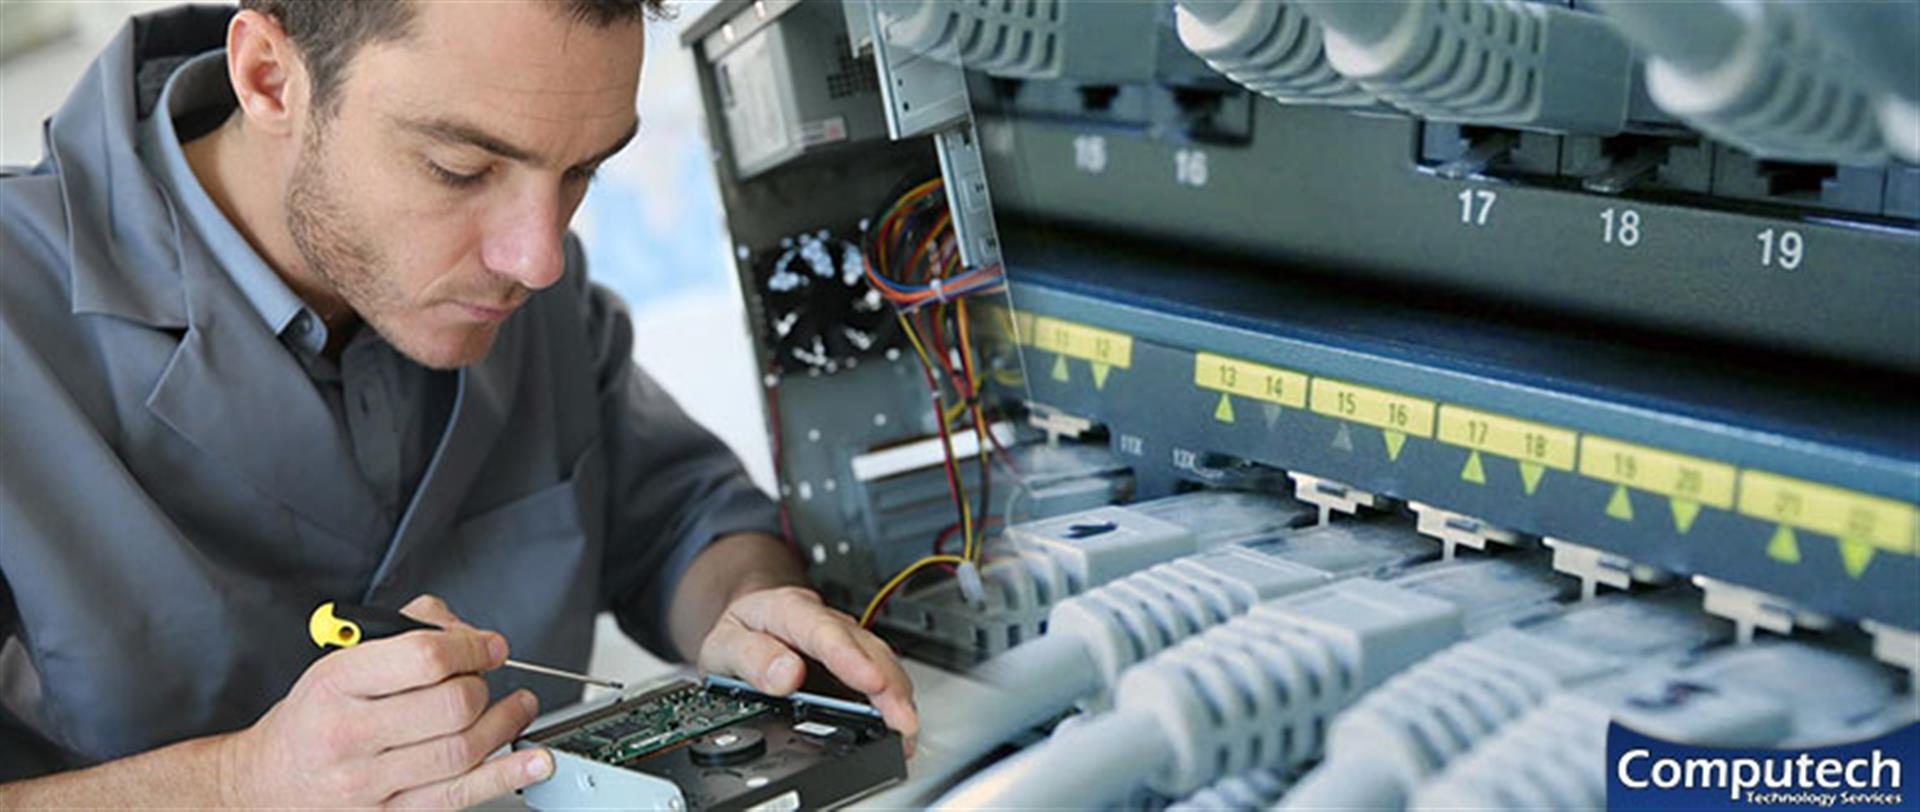 Carthage Tennessee Onsite Computer & Printer Repairs, Network, Voice & Data Cabling Solutions